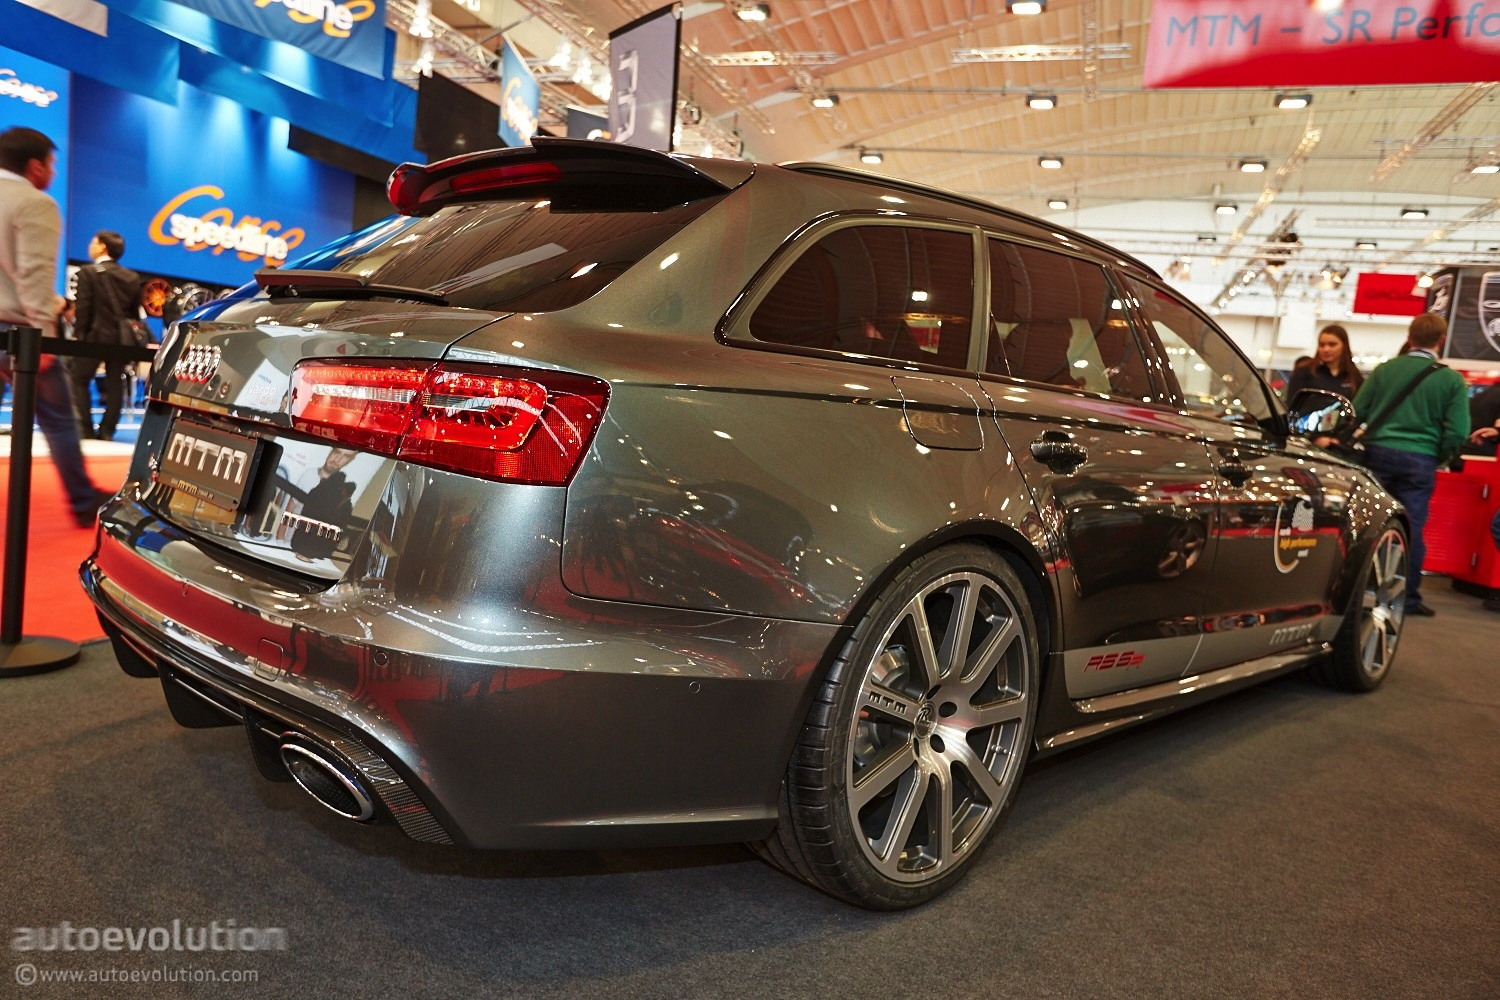 722 hp audi rs6 by mtm shows up at essen motor show 2013 live photos autoevolution. Black Bedroom Furniture Sets. Home Design Ideas